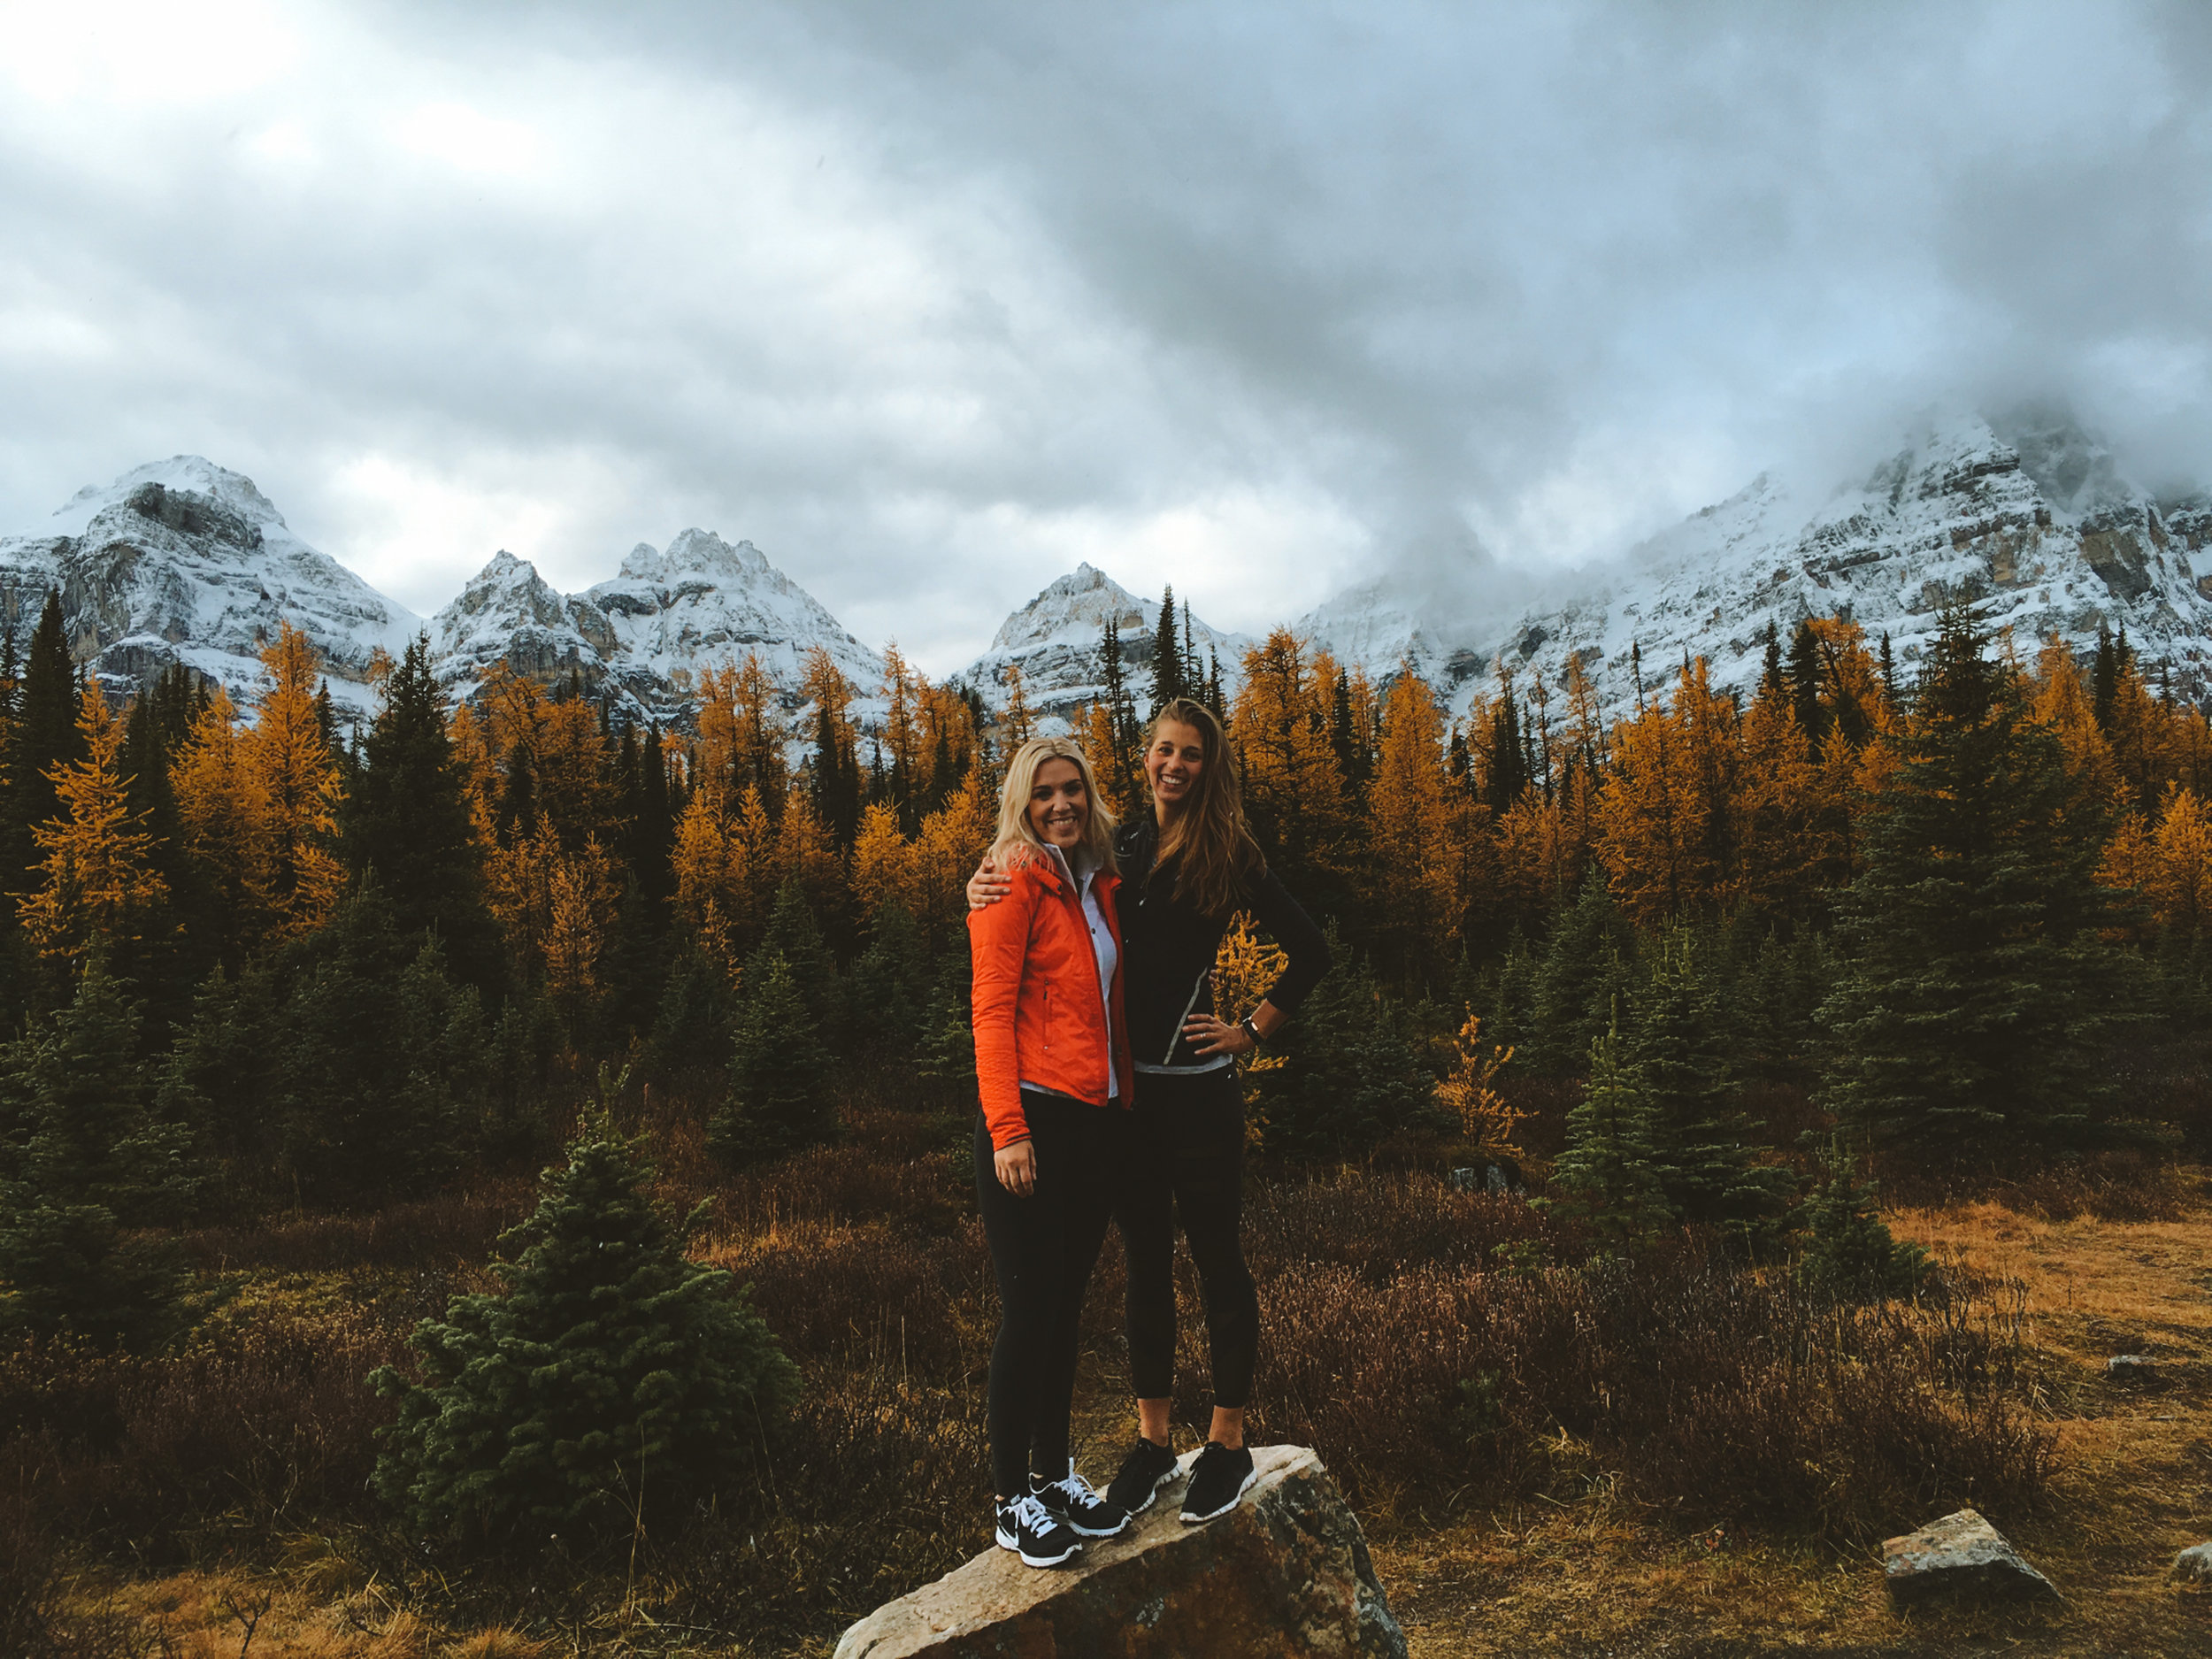 Larch season in it's full expression with a friend visiting from out of town. We arrived very early to ensure that we would have parking, on our way down the trail it was a consistent stream of people. During larch season especially arrive early!